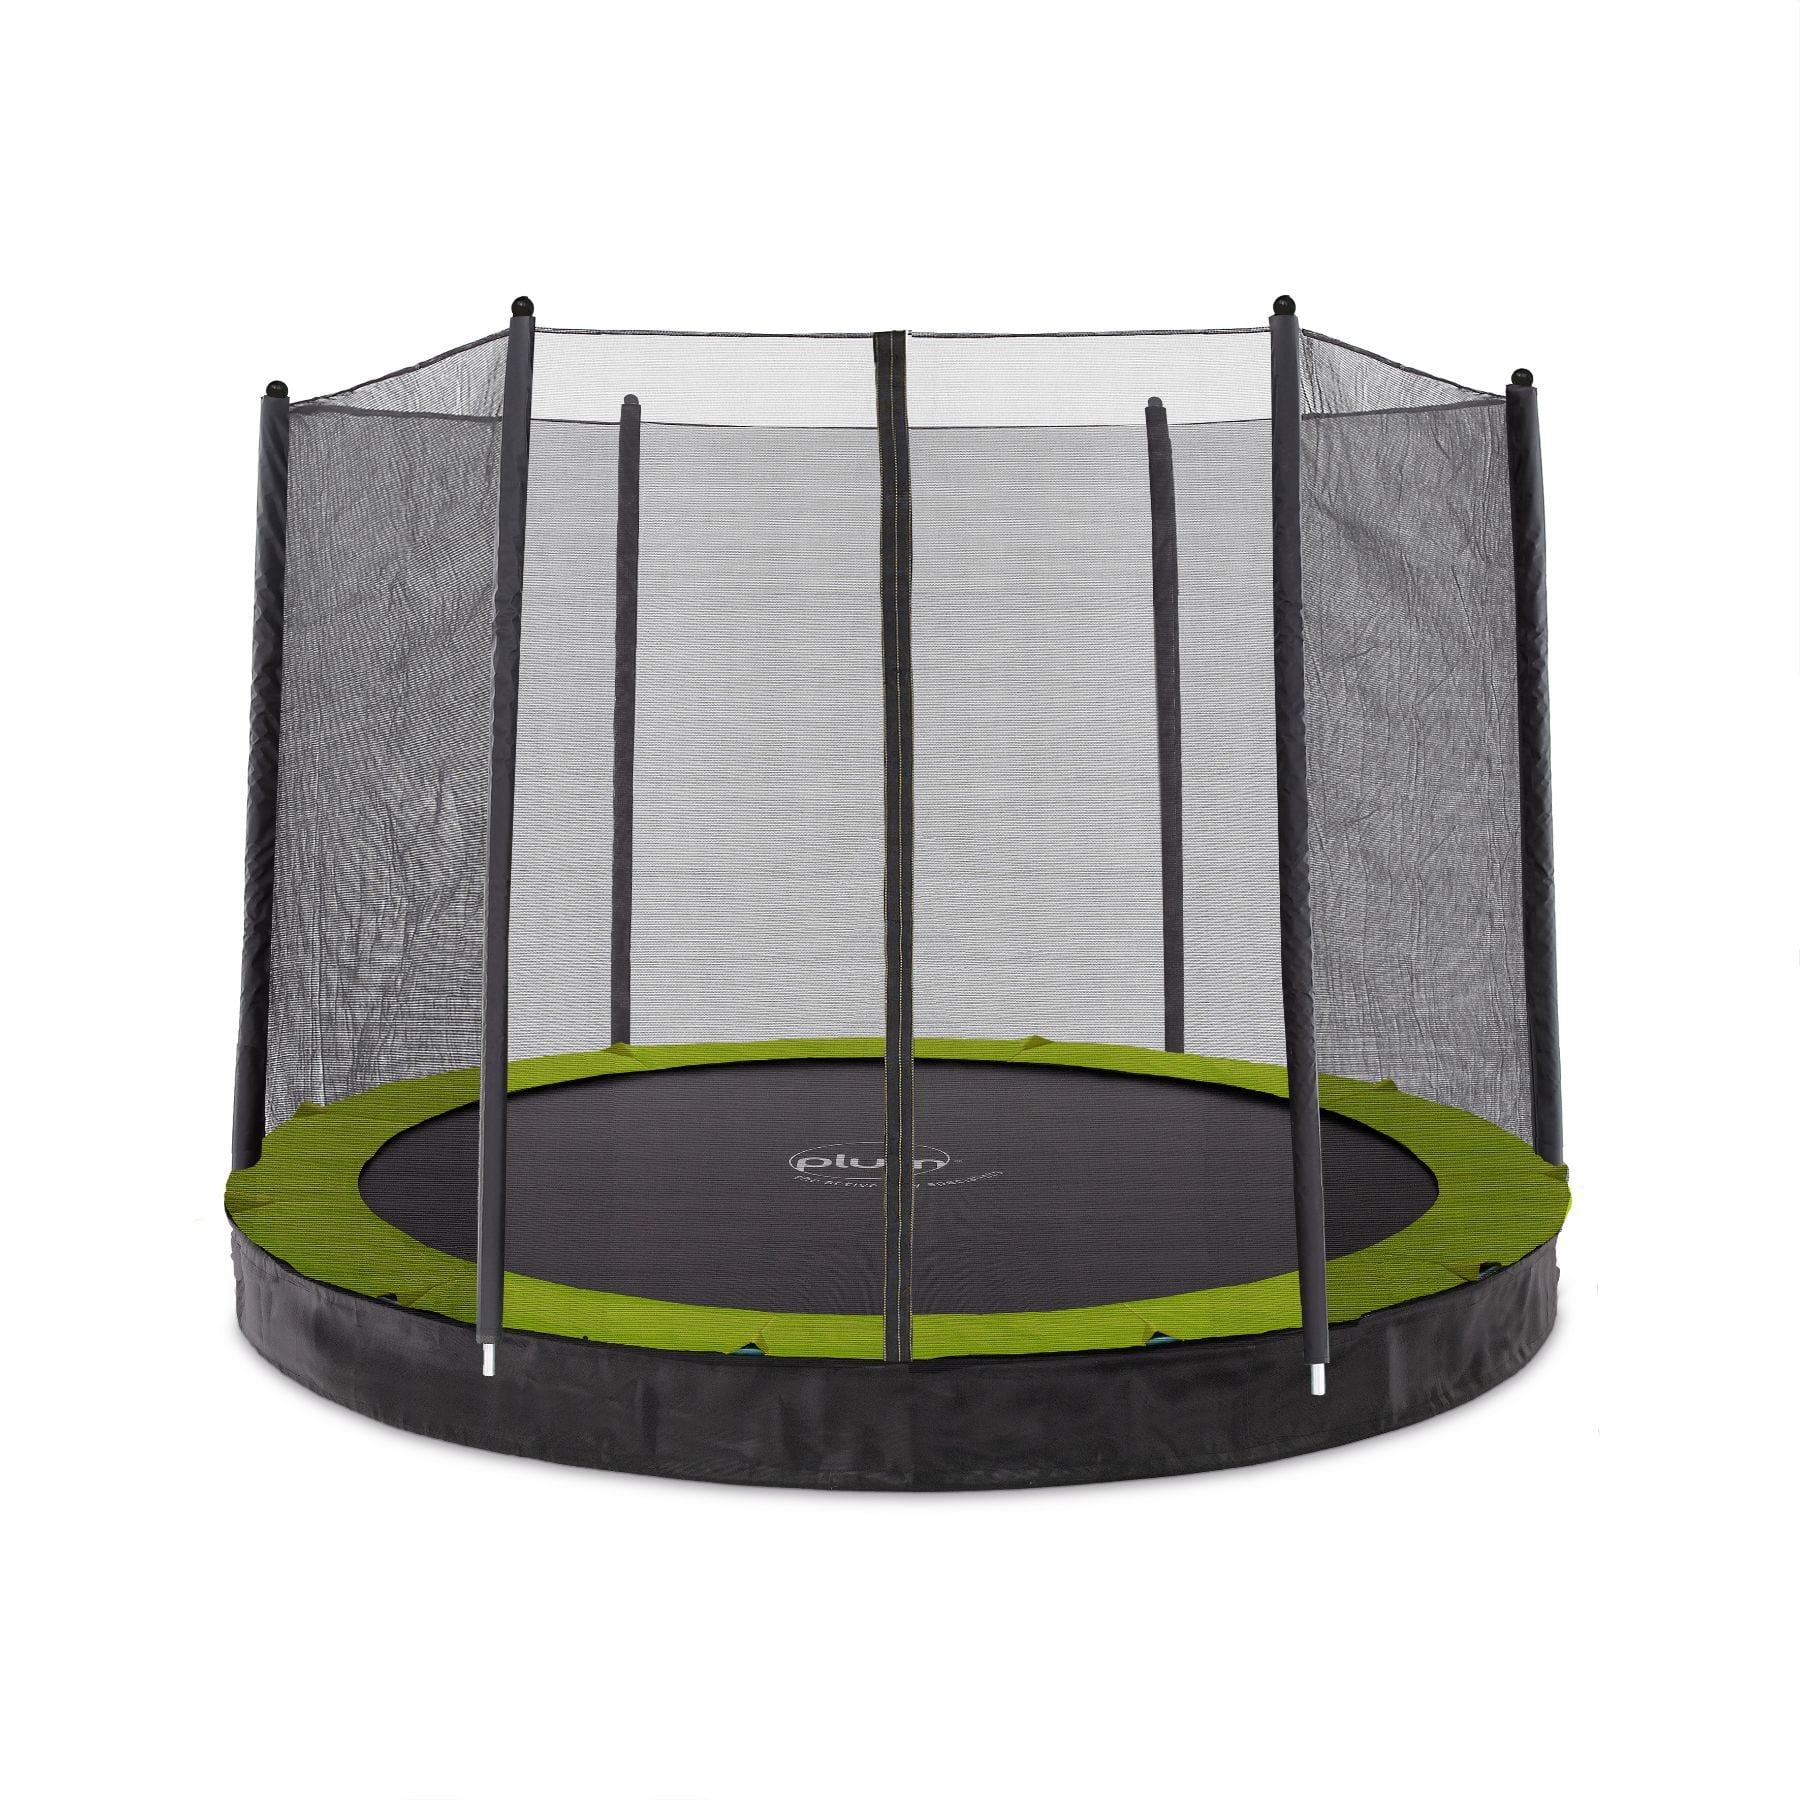 Plum 8ft Circular In Ground Trampoline with Enclosure (PVC)